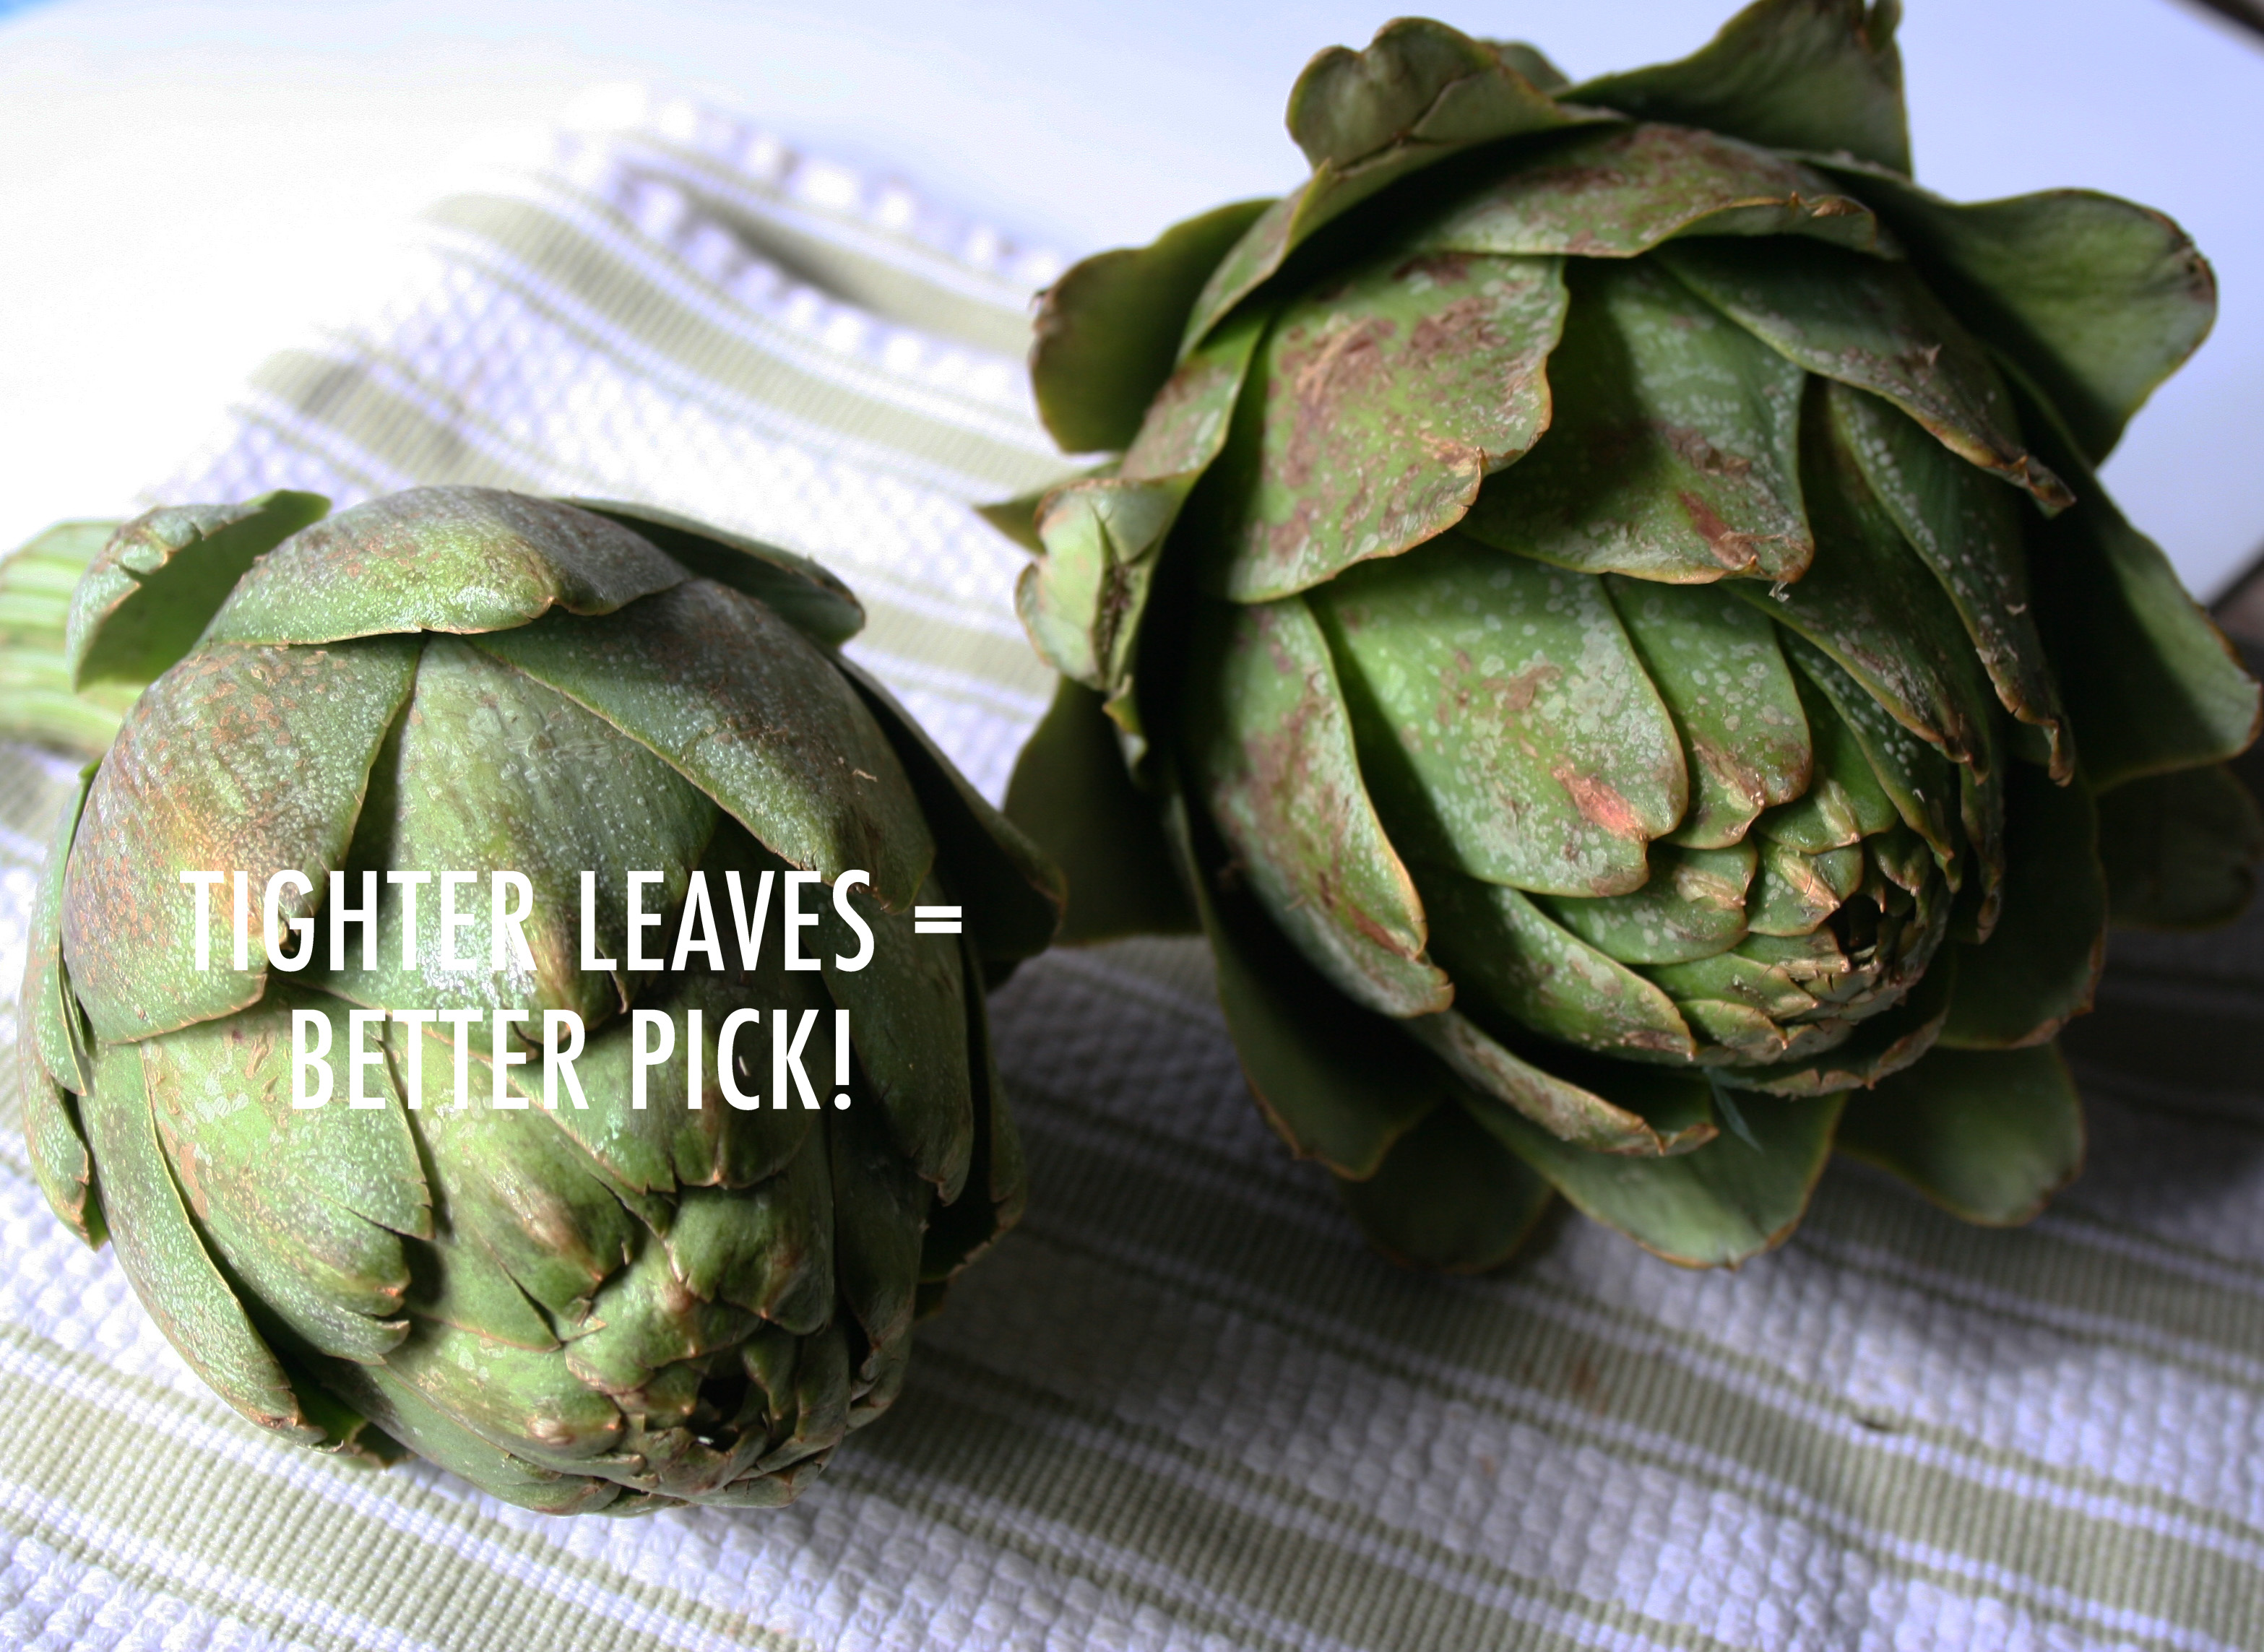 Things to look for when choosing an artichoke